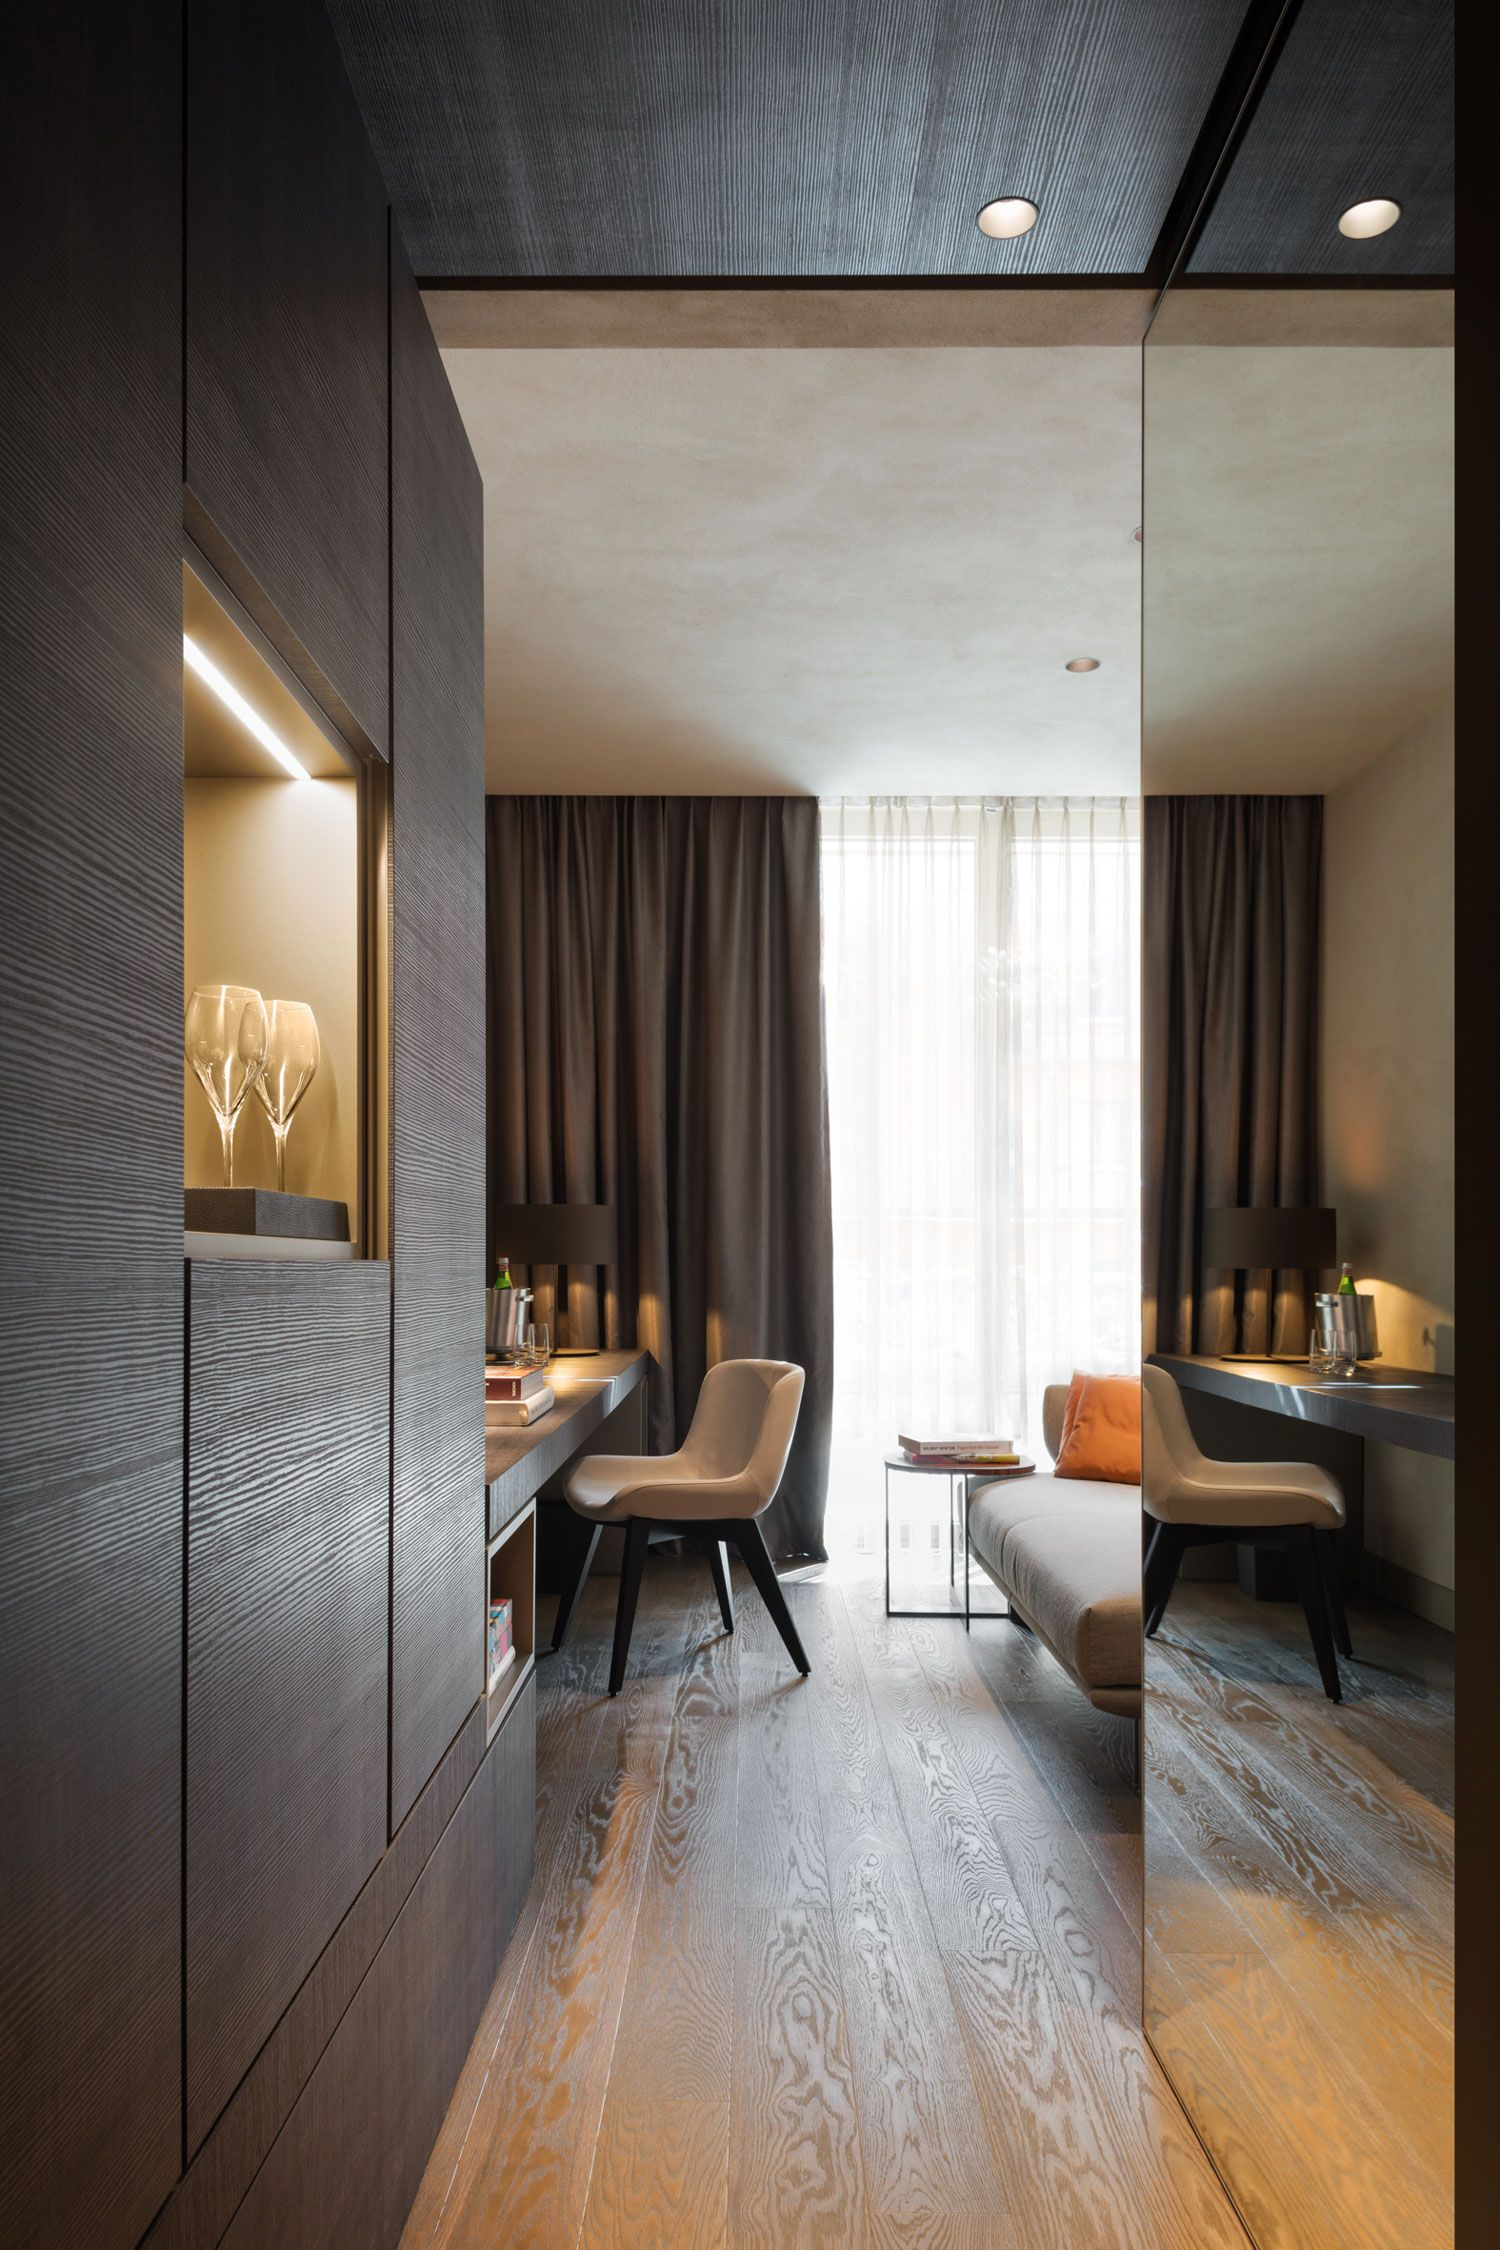 Milan Design Week 2017 Tips Our Must See Milan Itinerary  # Muebles Viu Comedores